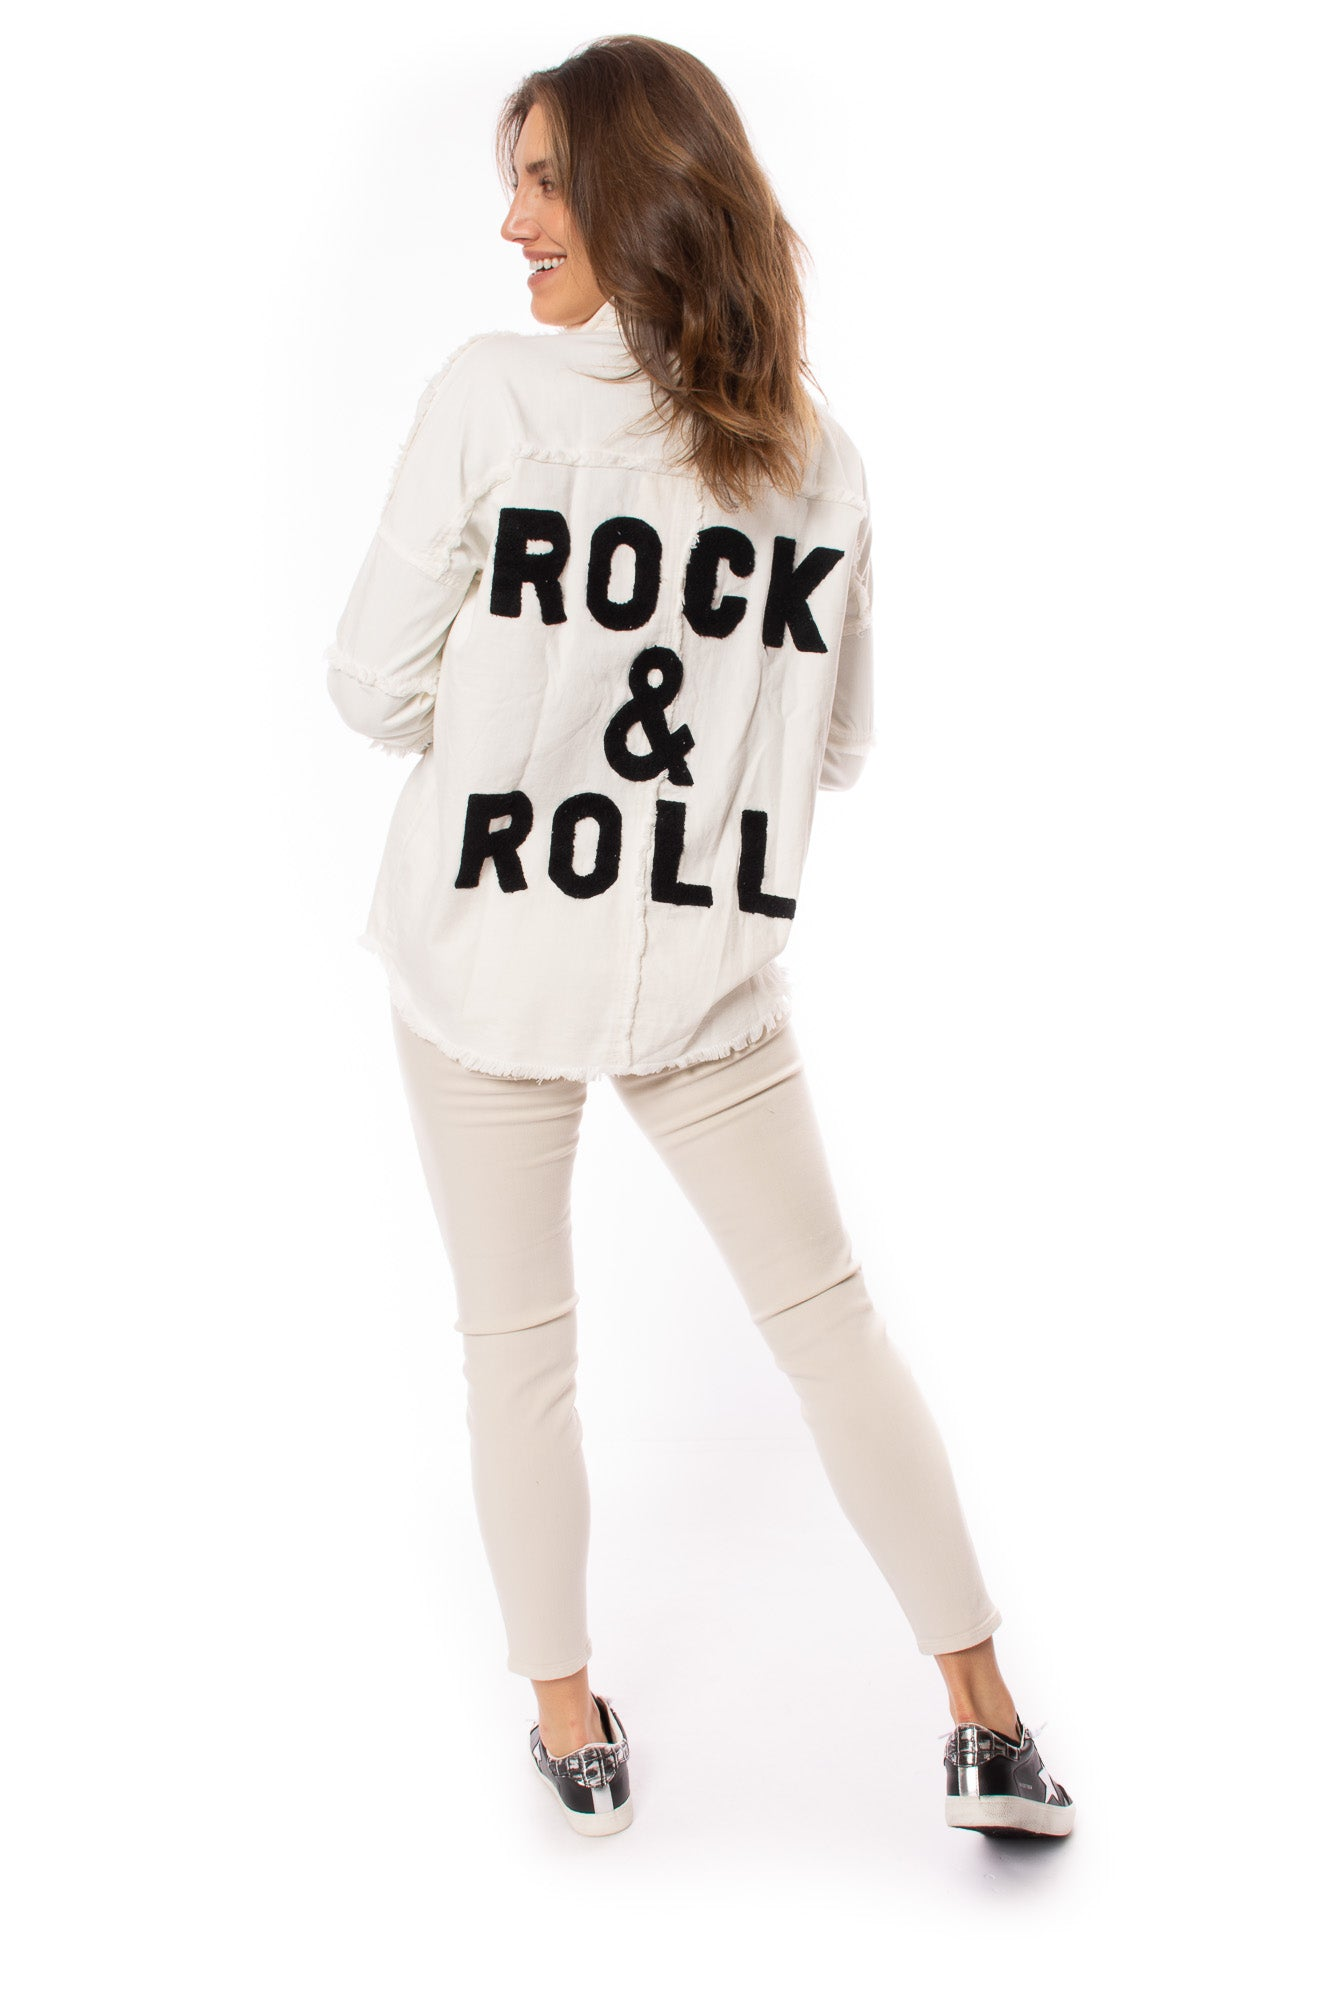 "Elan - One Size Fits All ""Rock & Roll"" Jacket (DE8121, White)"